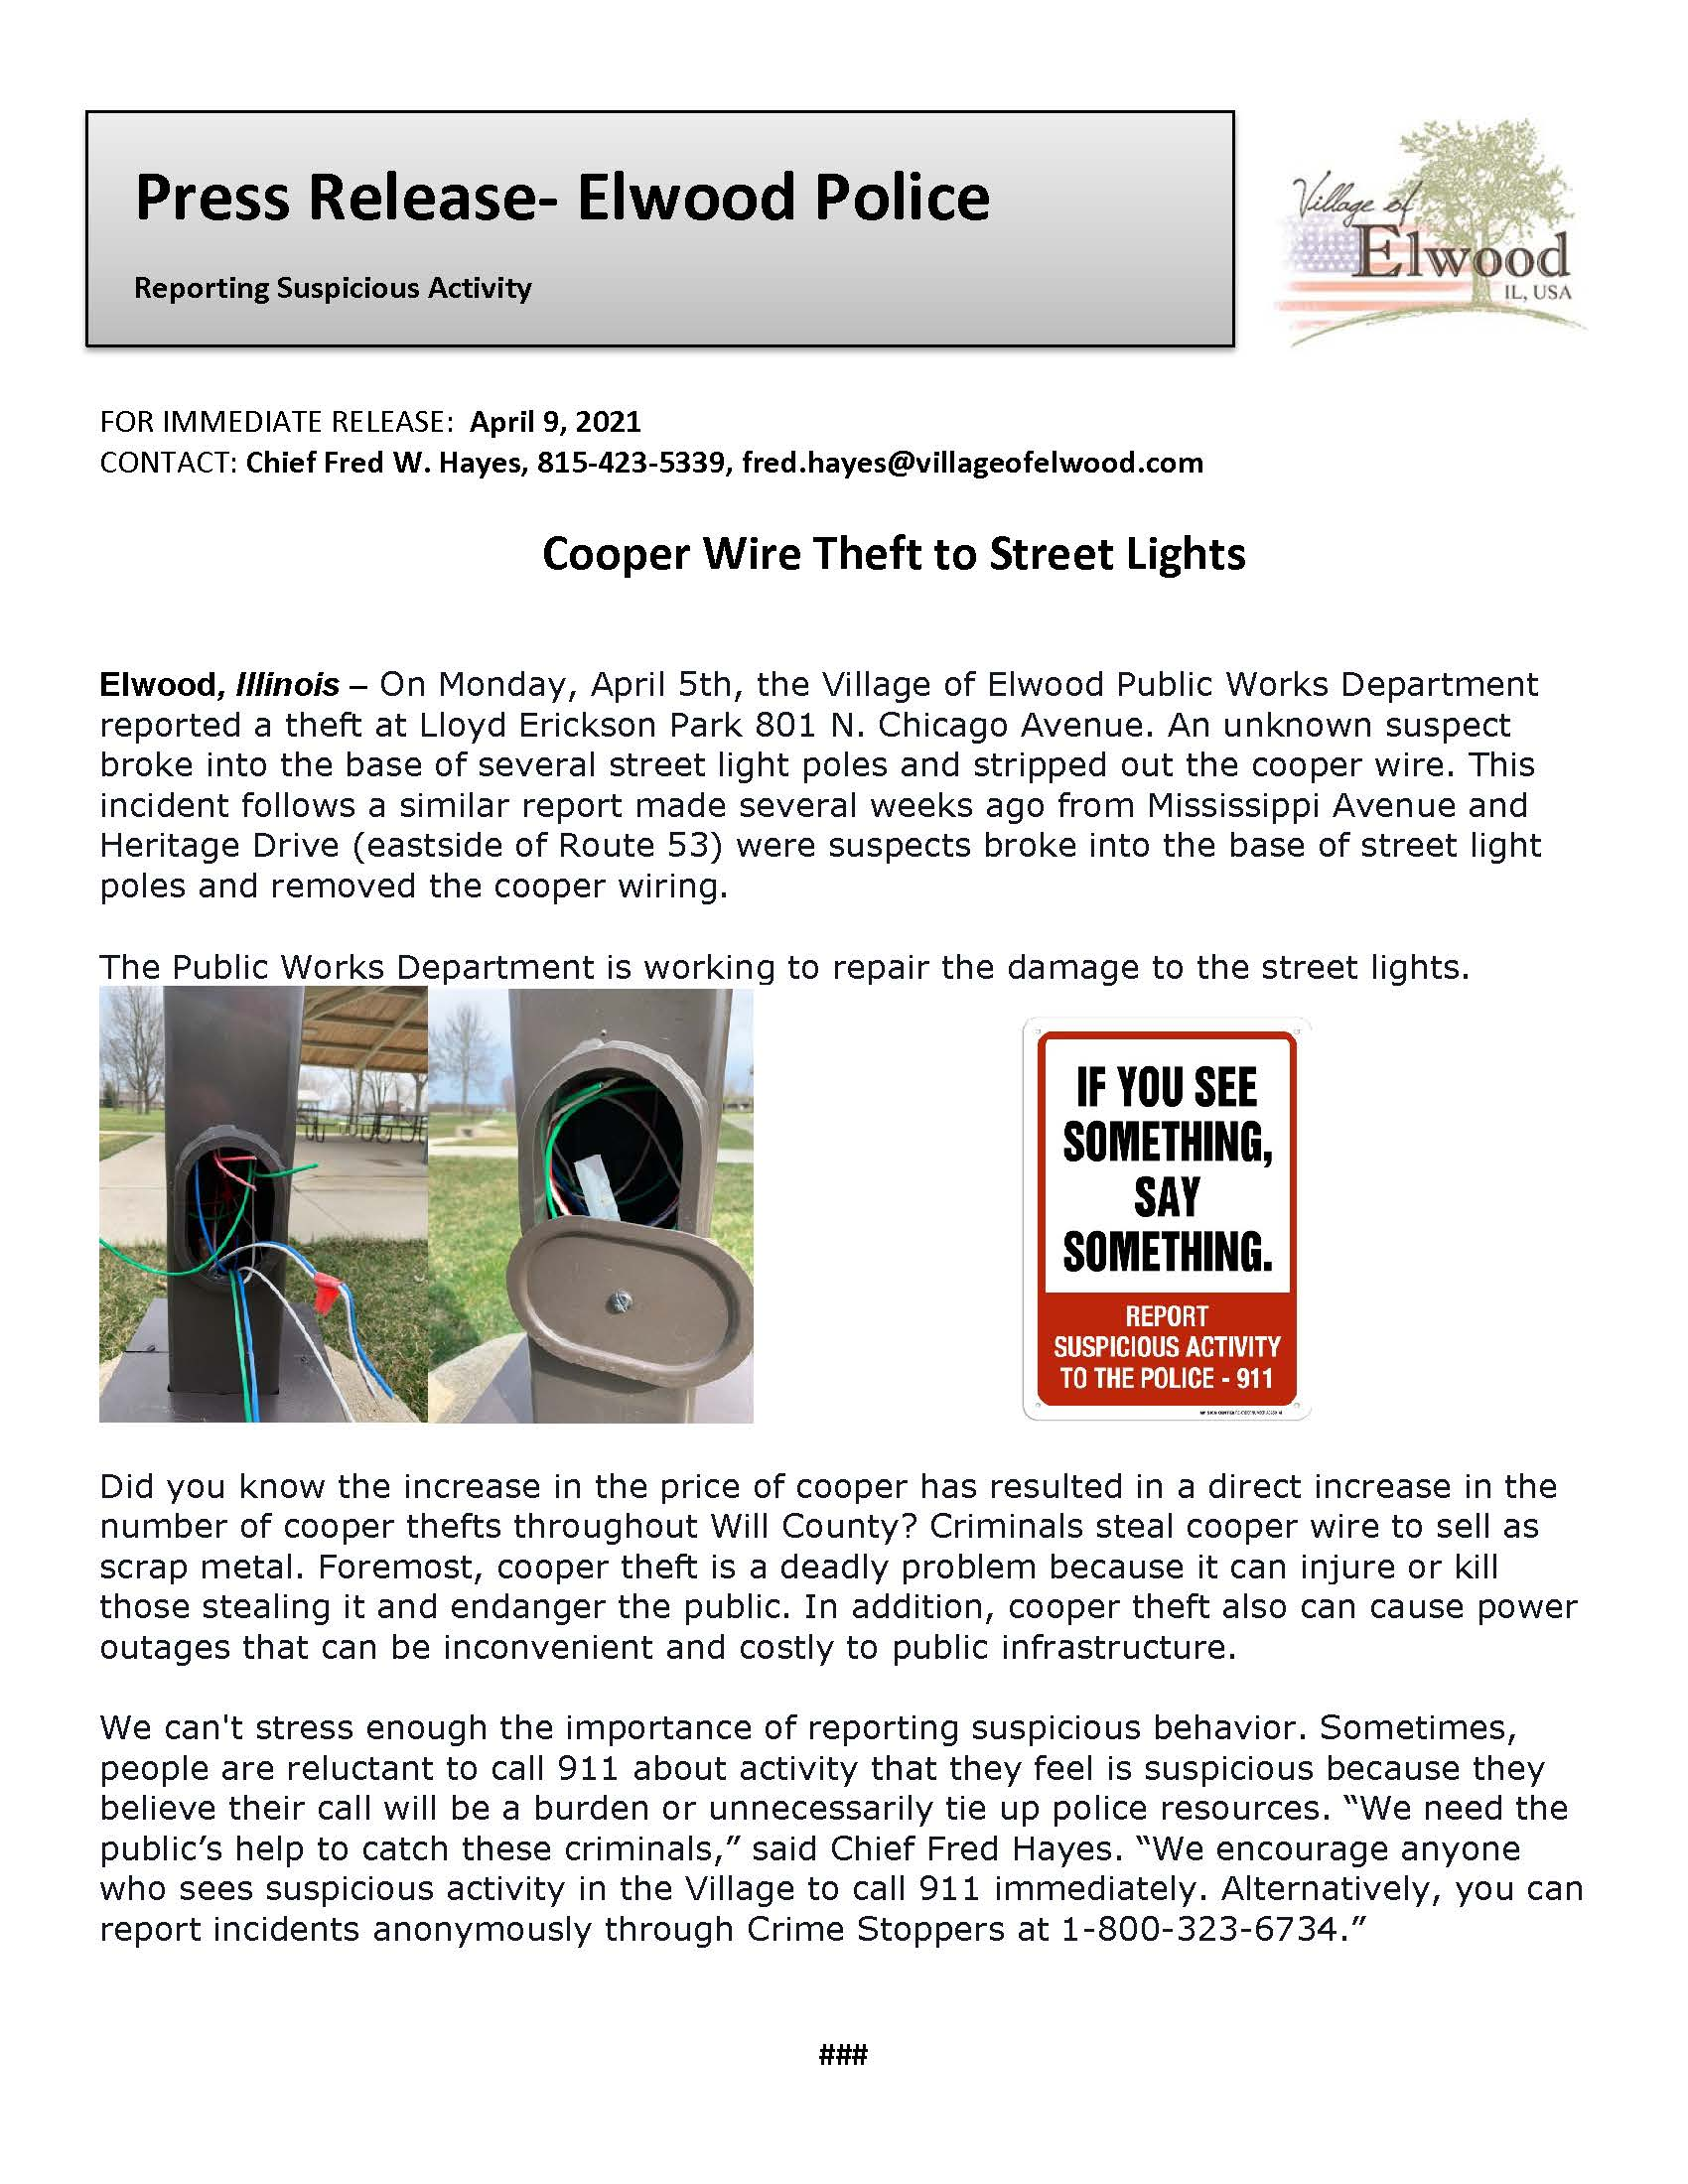 Press Release Cooper Wire Thefts 2021